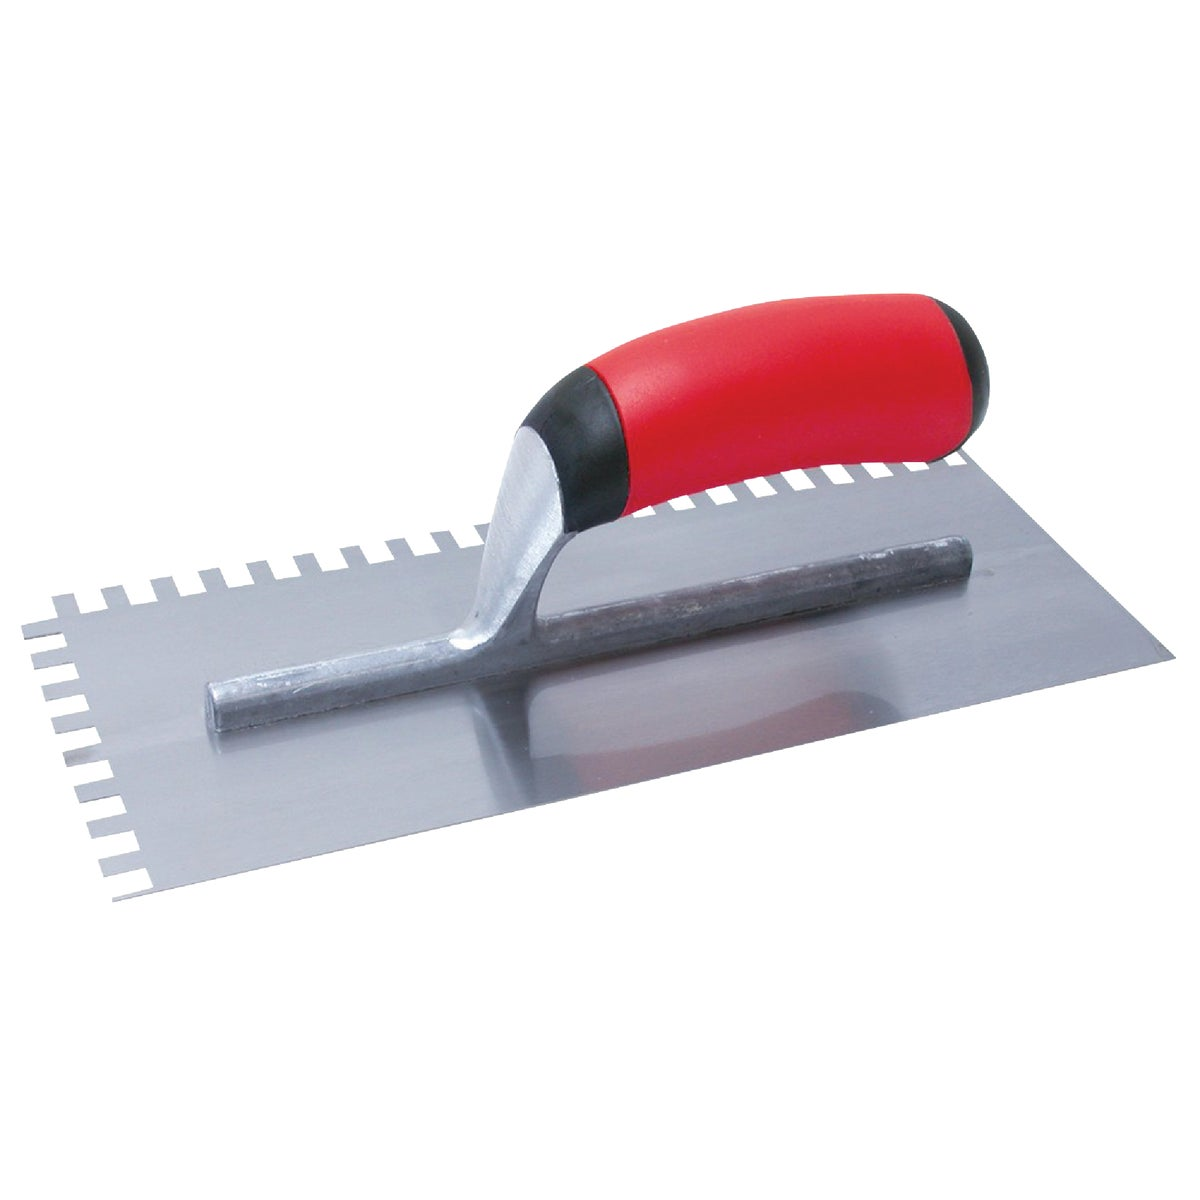 1/16X1/16 NOTCHED TROWEL - 15669 by Marshalltown Trowel